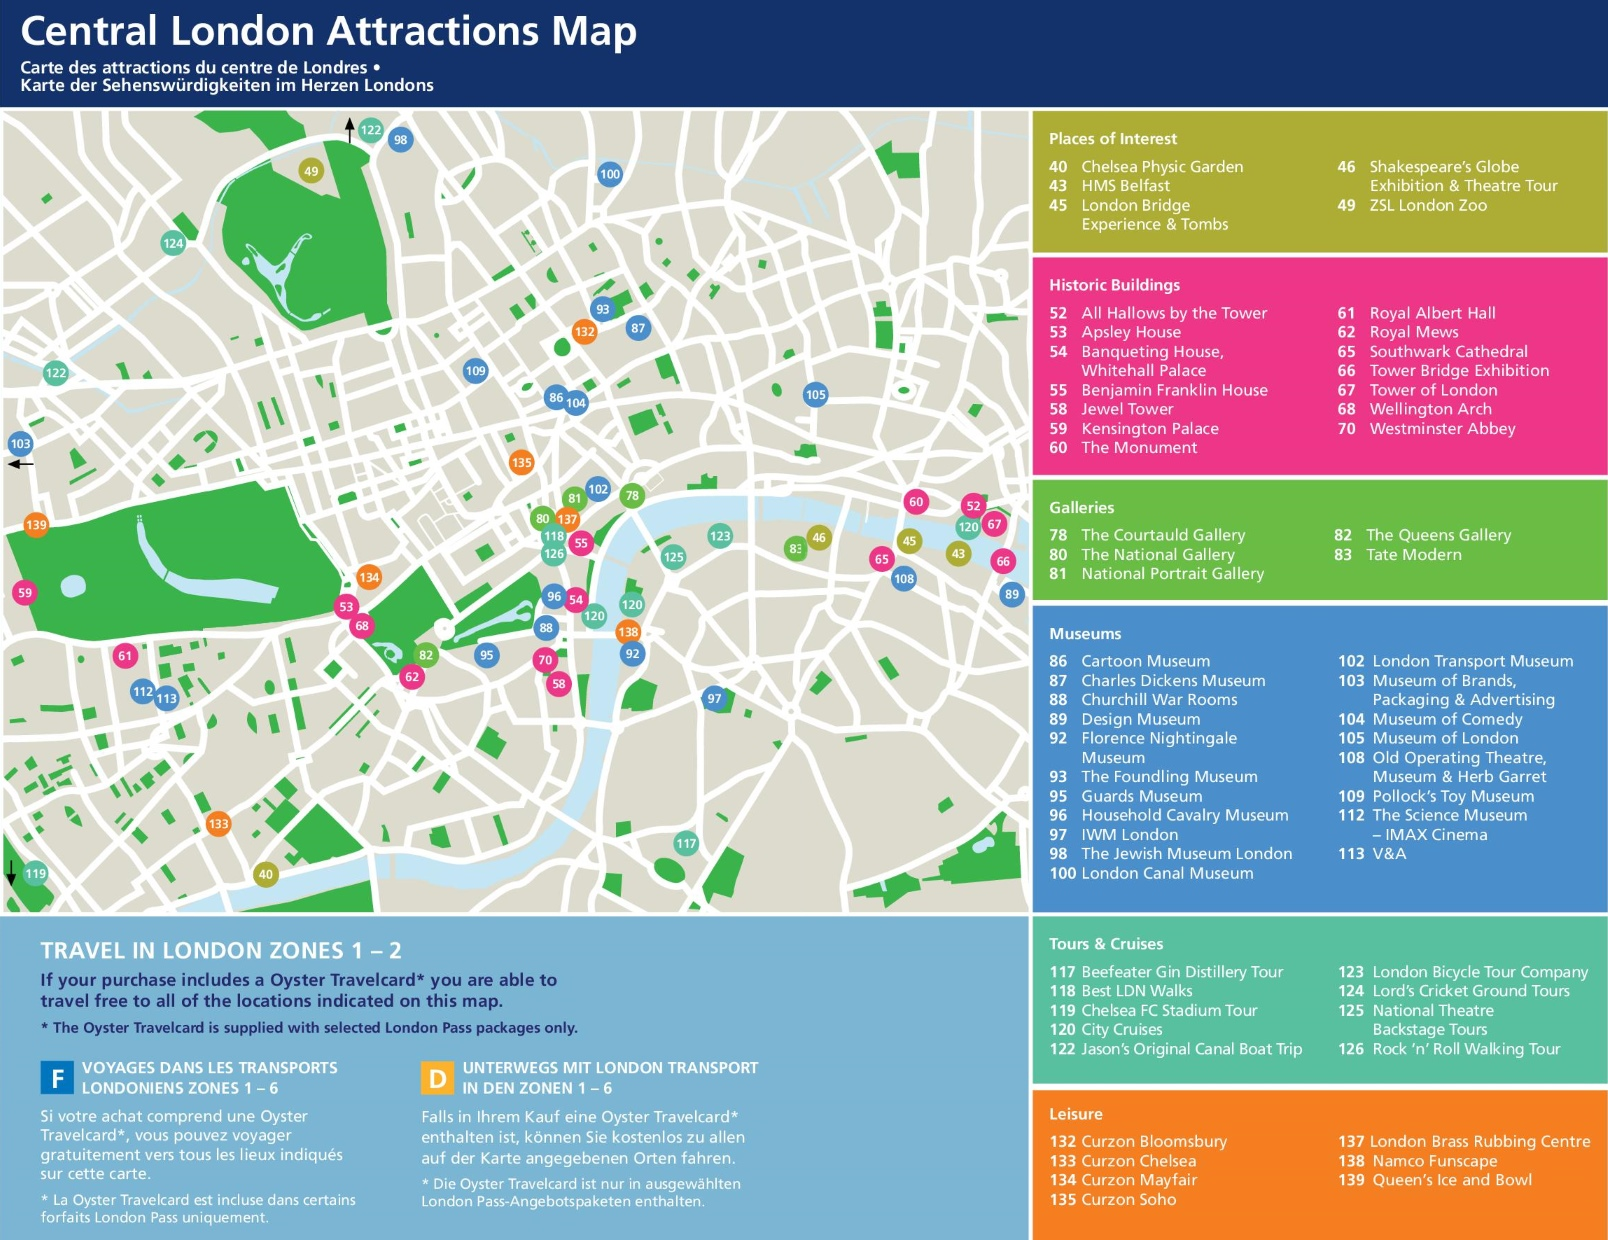 Central London tourist attractions map – Map Of Central London With Tourist Attractions